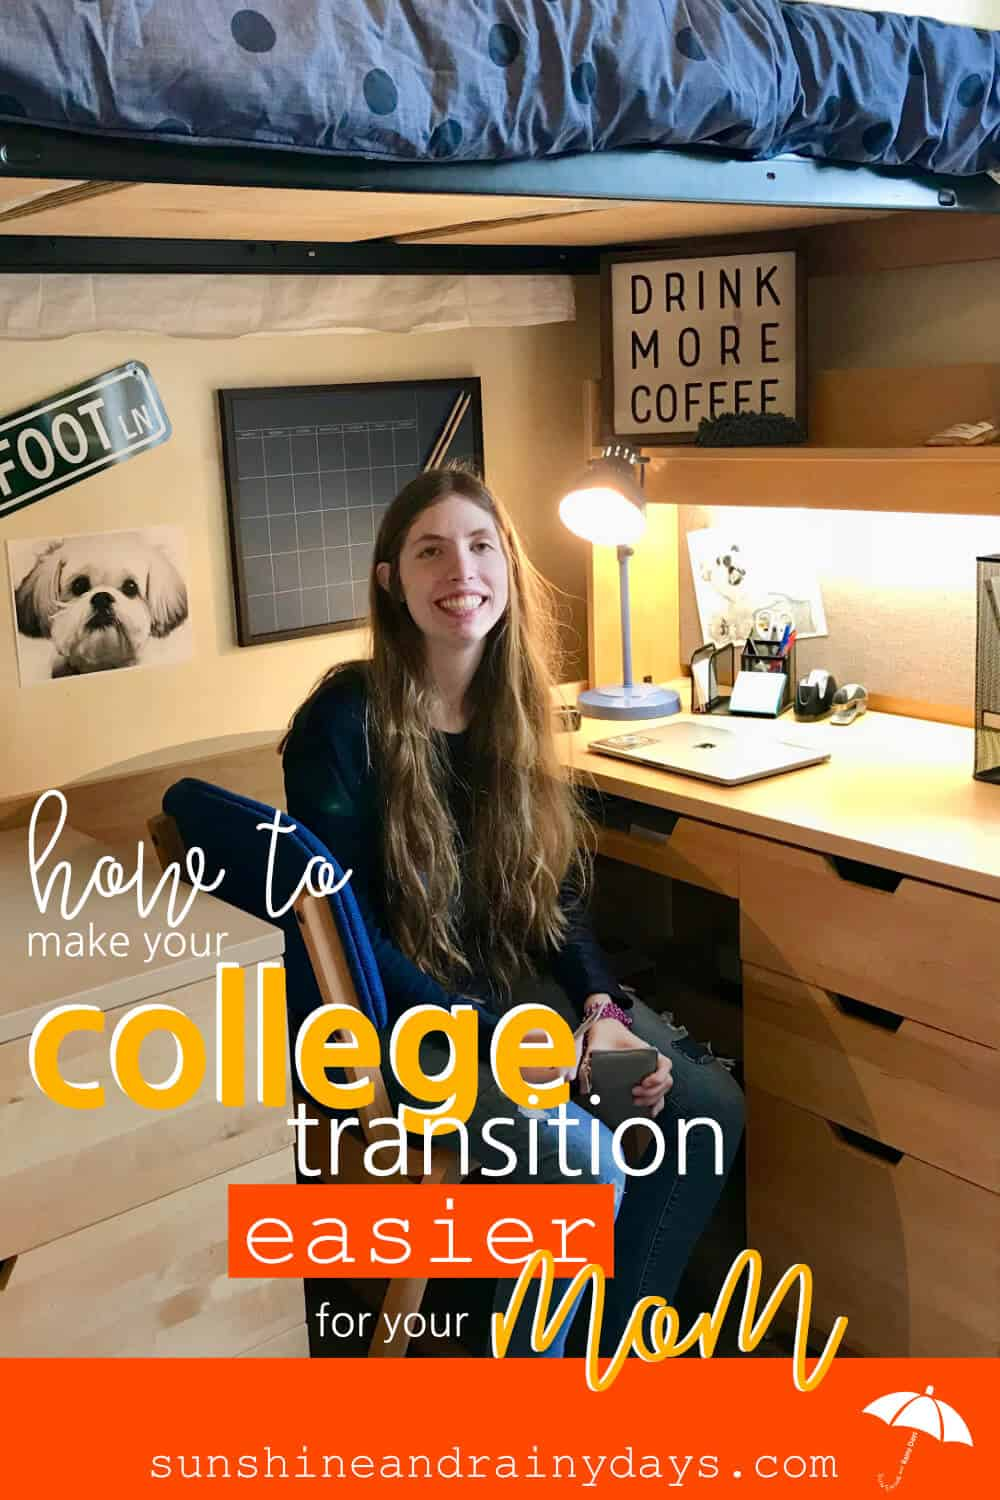 We parents work hard to make the college transition easier on our kids. Then the day comes when we drive away from campus. That day is hard. College Transition | College Transition Tips | #college #moms #SARD